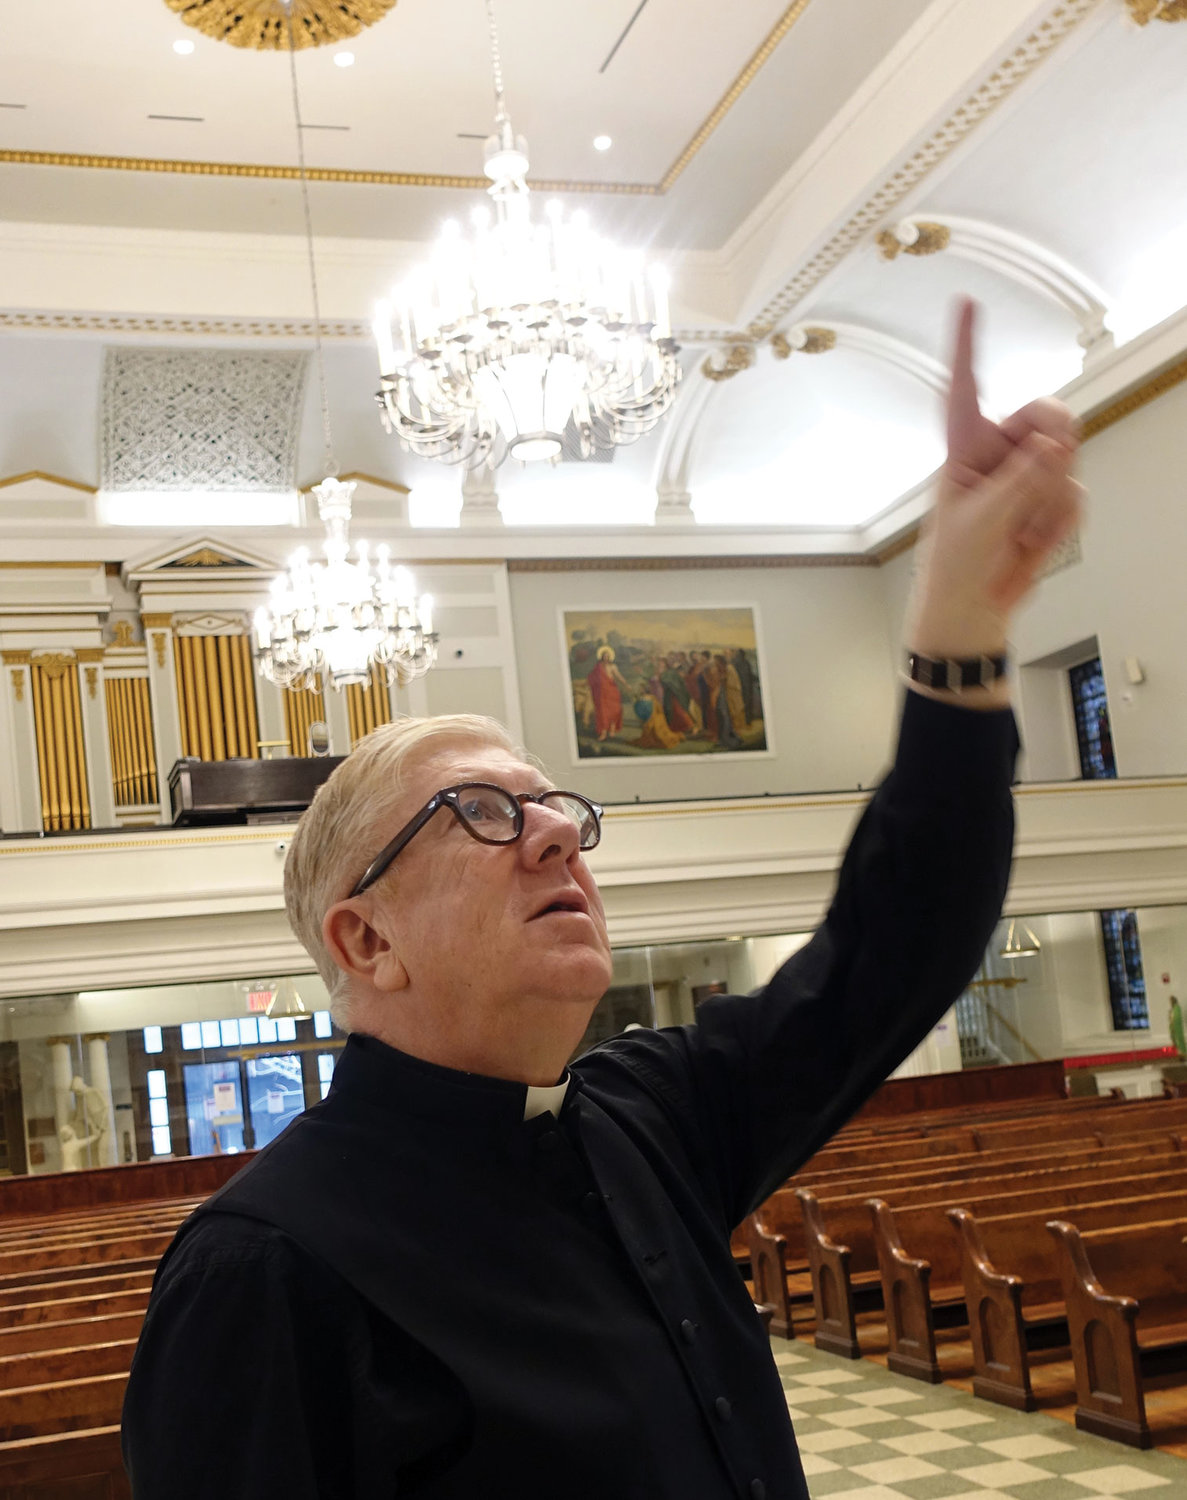 Father Jarlath Quinn, the pastor of St. Peter and Our Lady of the Rosary parish, points to a detail in artwork.